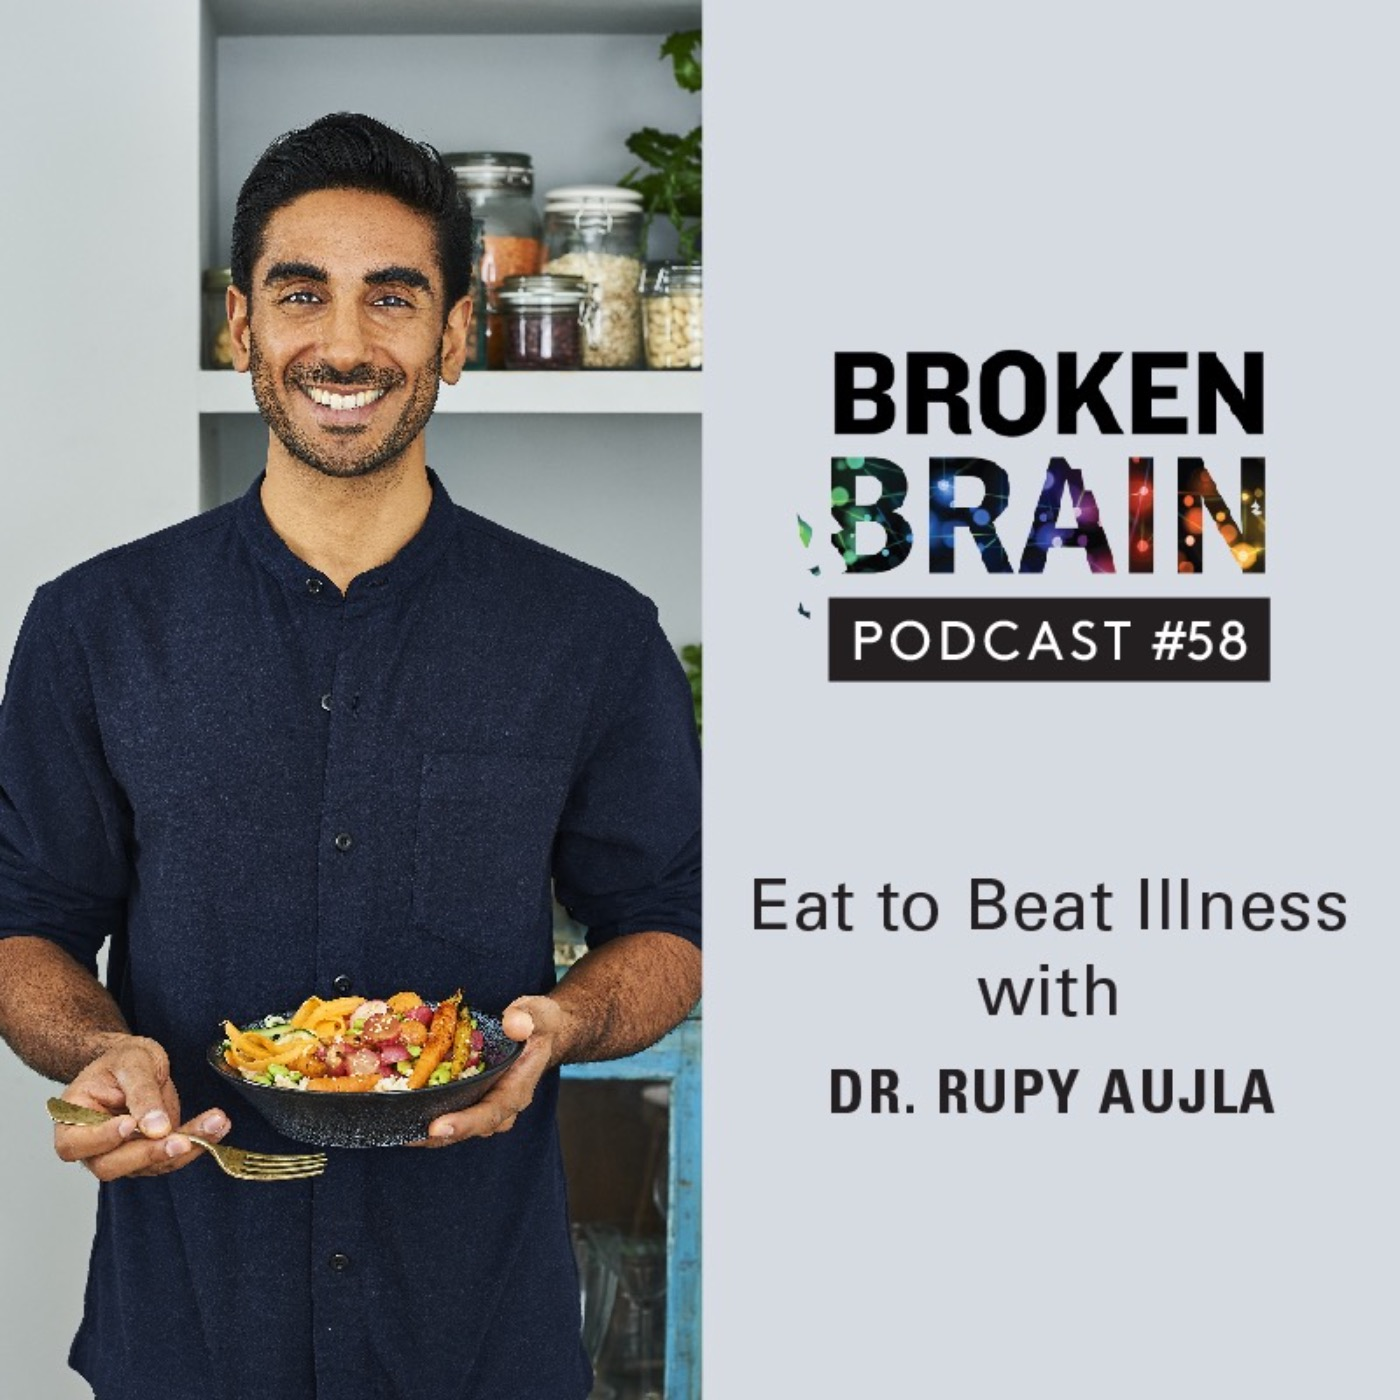 #58: Eat to Beat Illness with Dr. Rupy Aujla